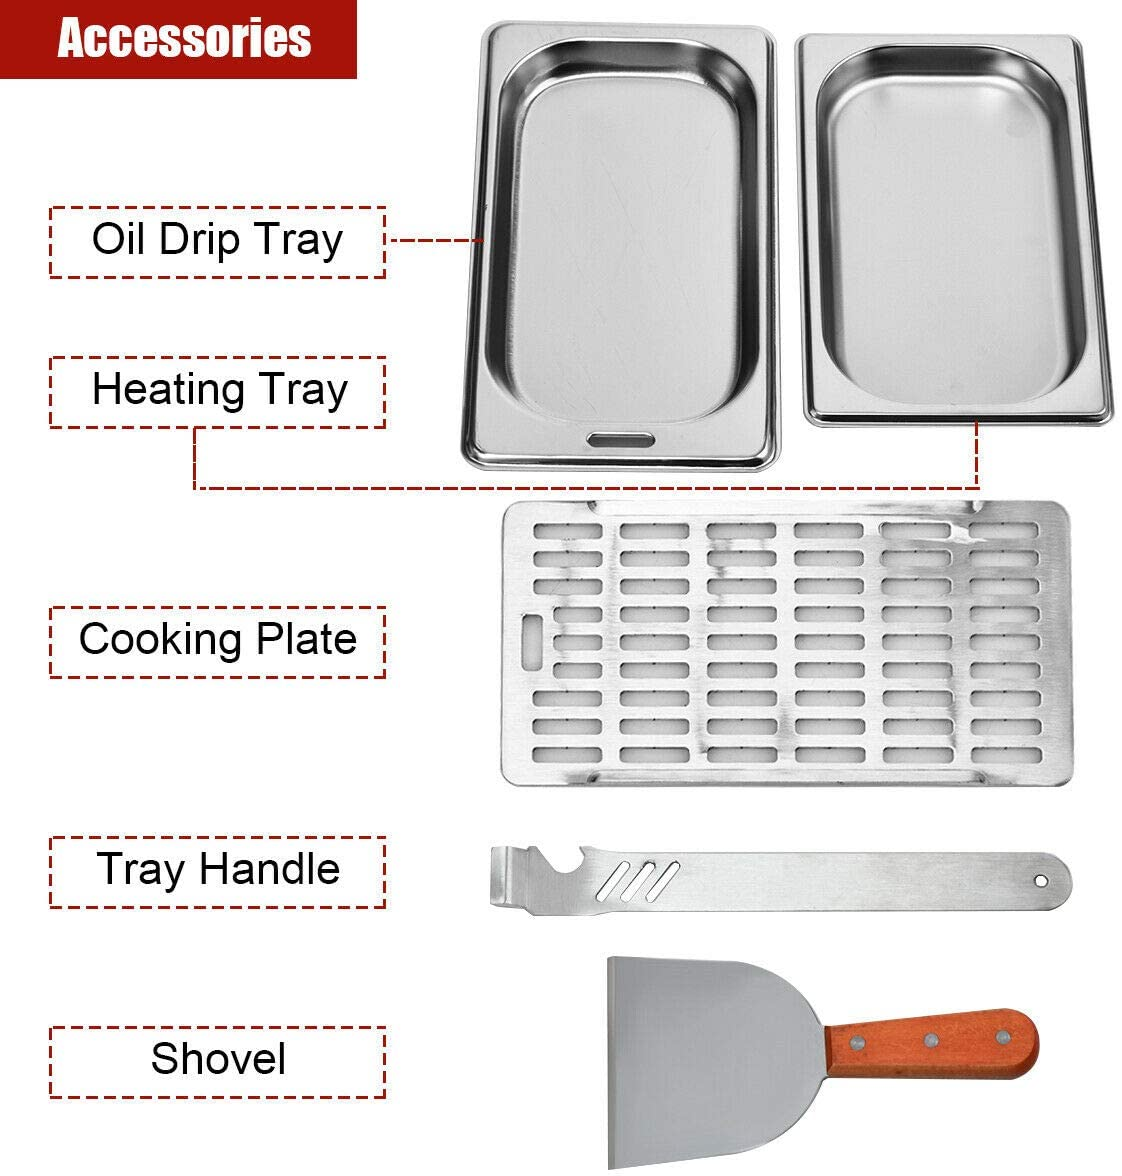 Gas Cylinder Connection CSA//ETL Certificated Stainless Steel 1500℉ of Intense Heat COSTWAY Propane Steak Infrared Grill for Tailgating 7000 BTU Compact Outdoor Grill Machine Large Heating Place